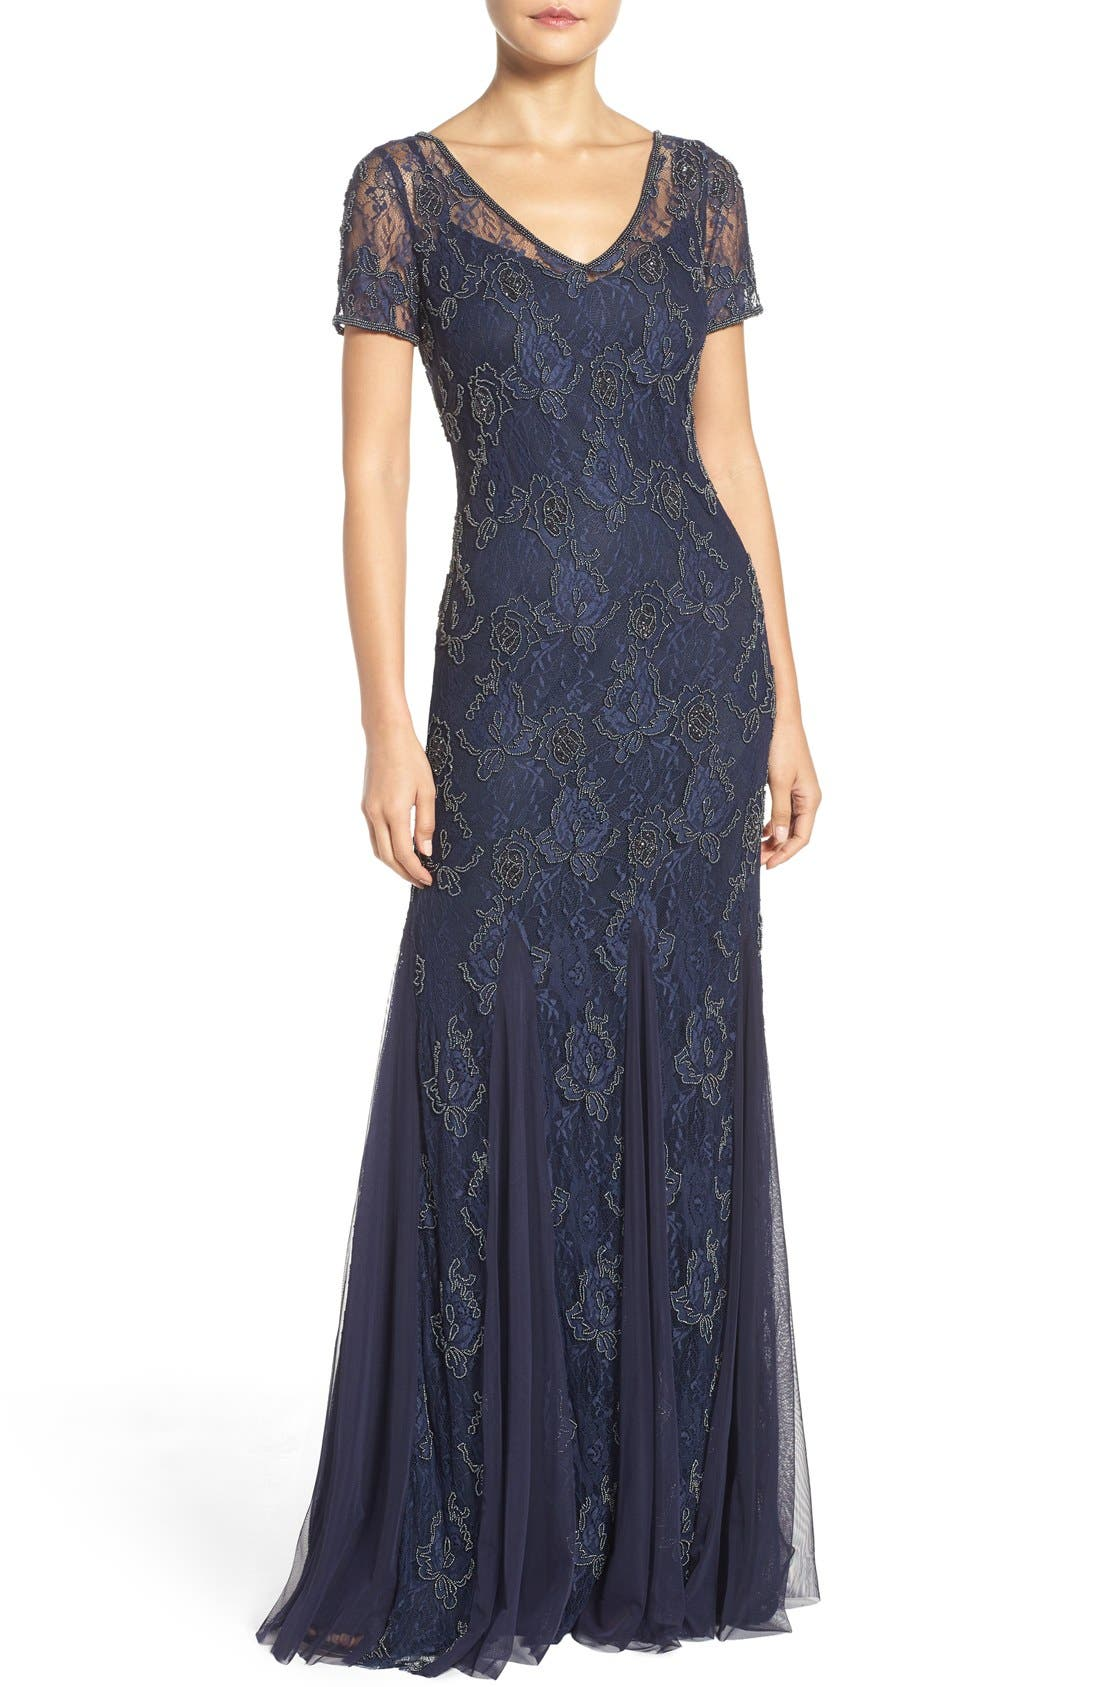 Alternate Image 1 Selected - Adrianna Papell Beaded Lace Gown